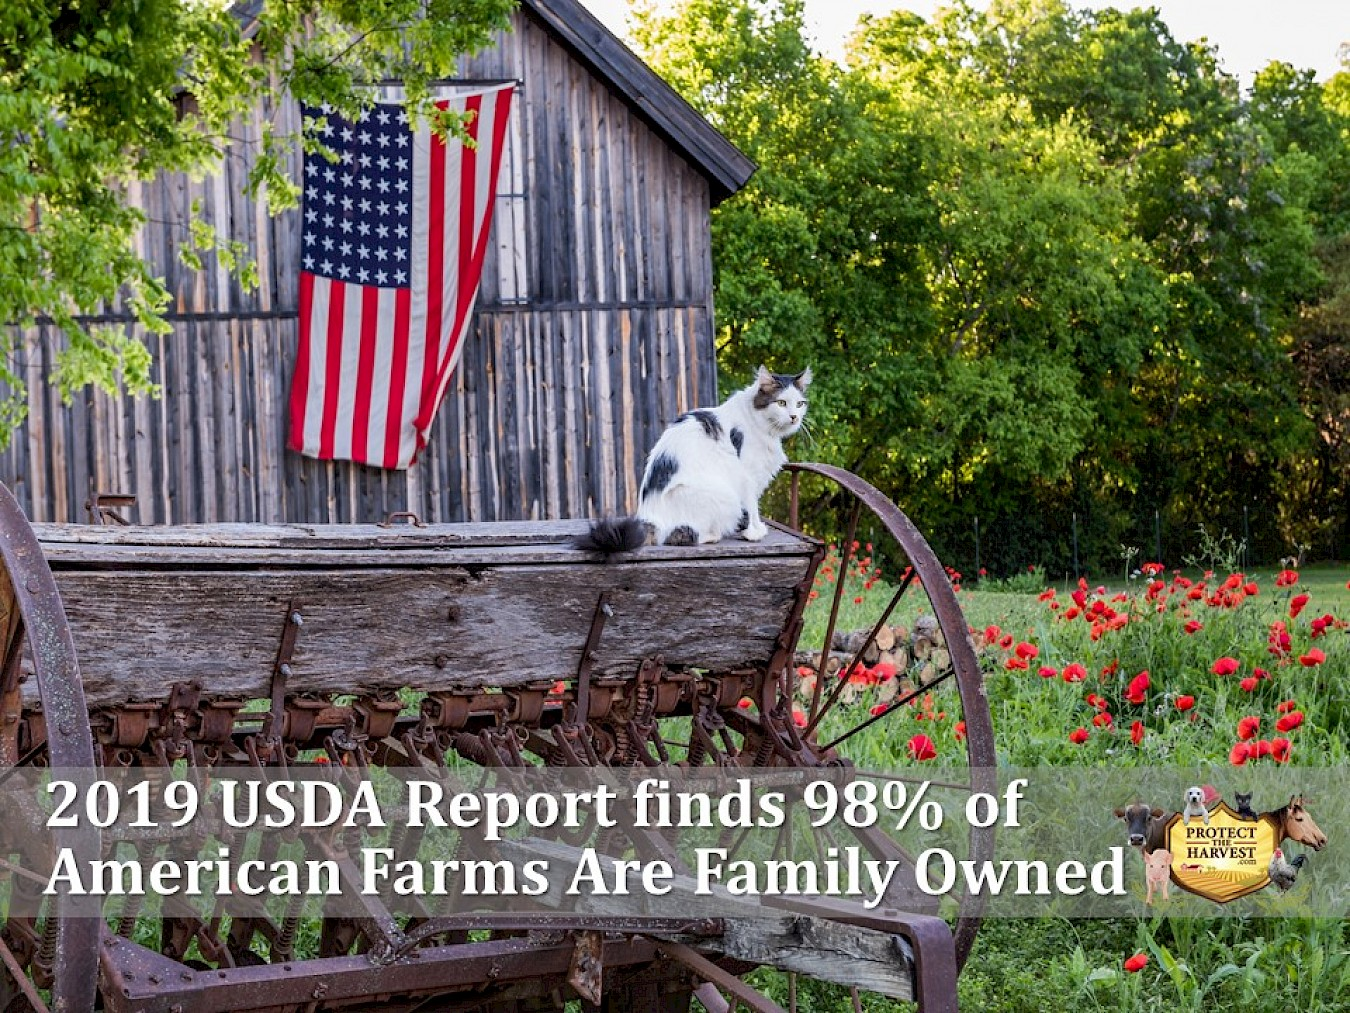 98% of American Farms are Family Owned